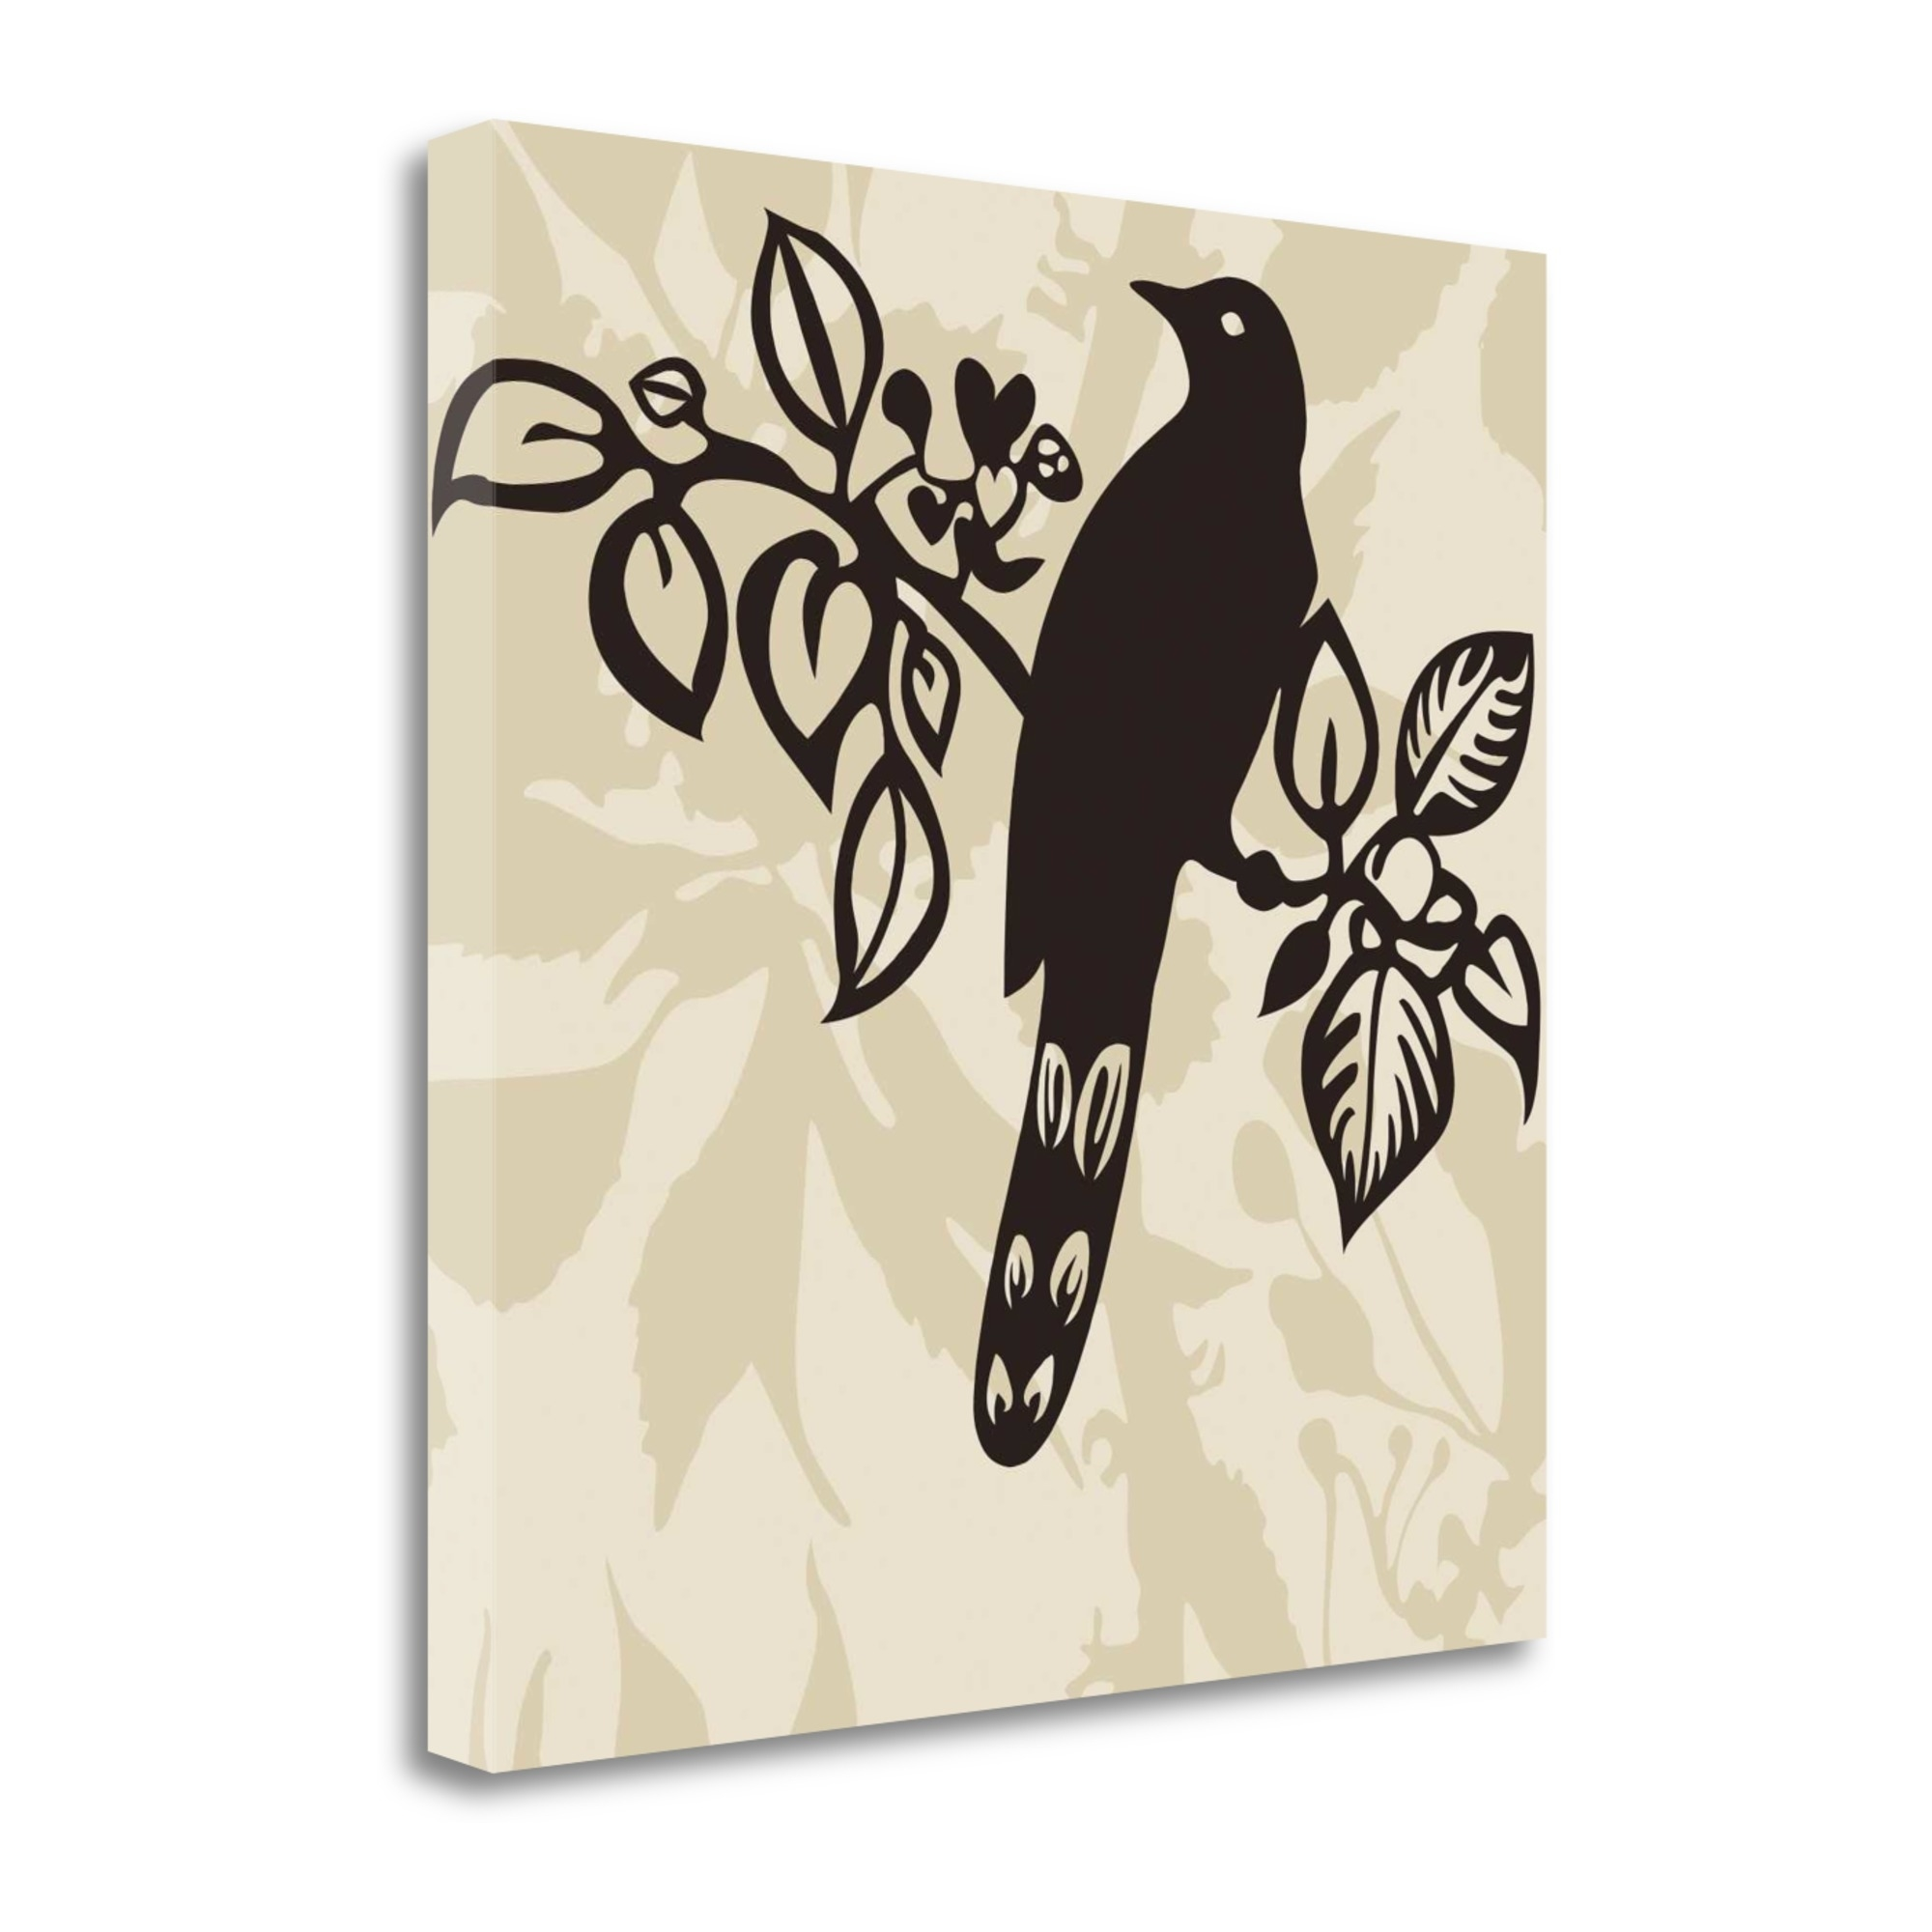 "Song Bird 1 By Jette Svane, 23"" x 23\"" Fine Art Giclee Print on Gallery Wrap Canvas, Ready to Hang"